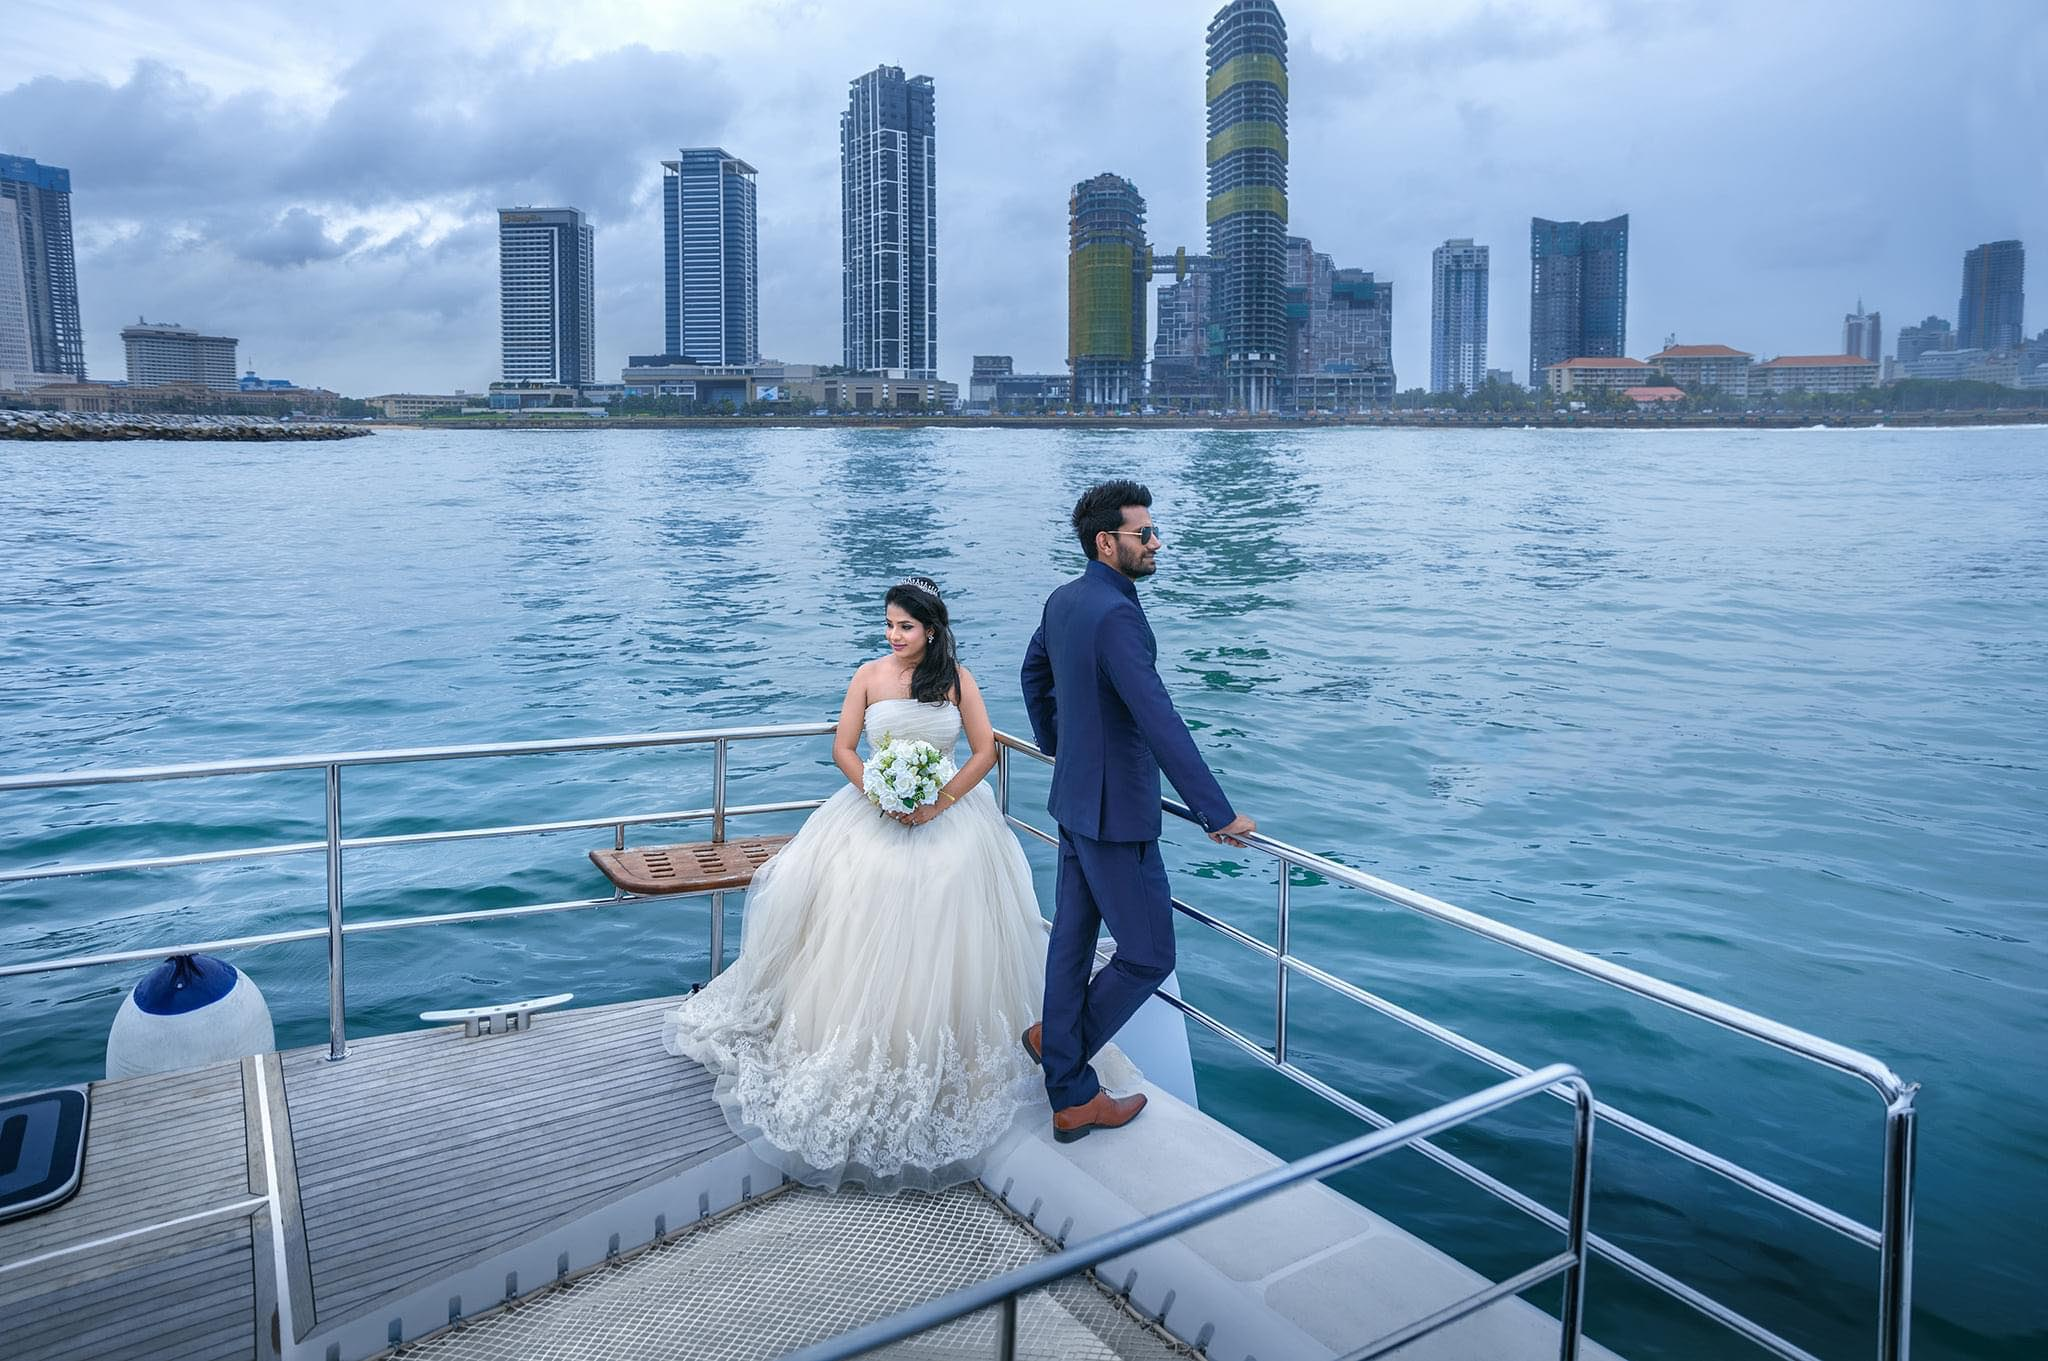 Photoshoots-venues-in-Colombo-Port-City